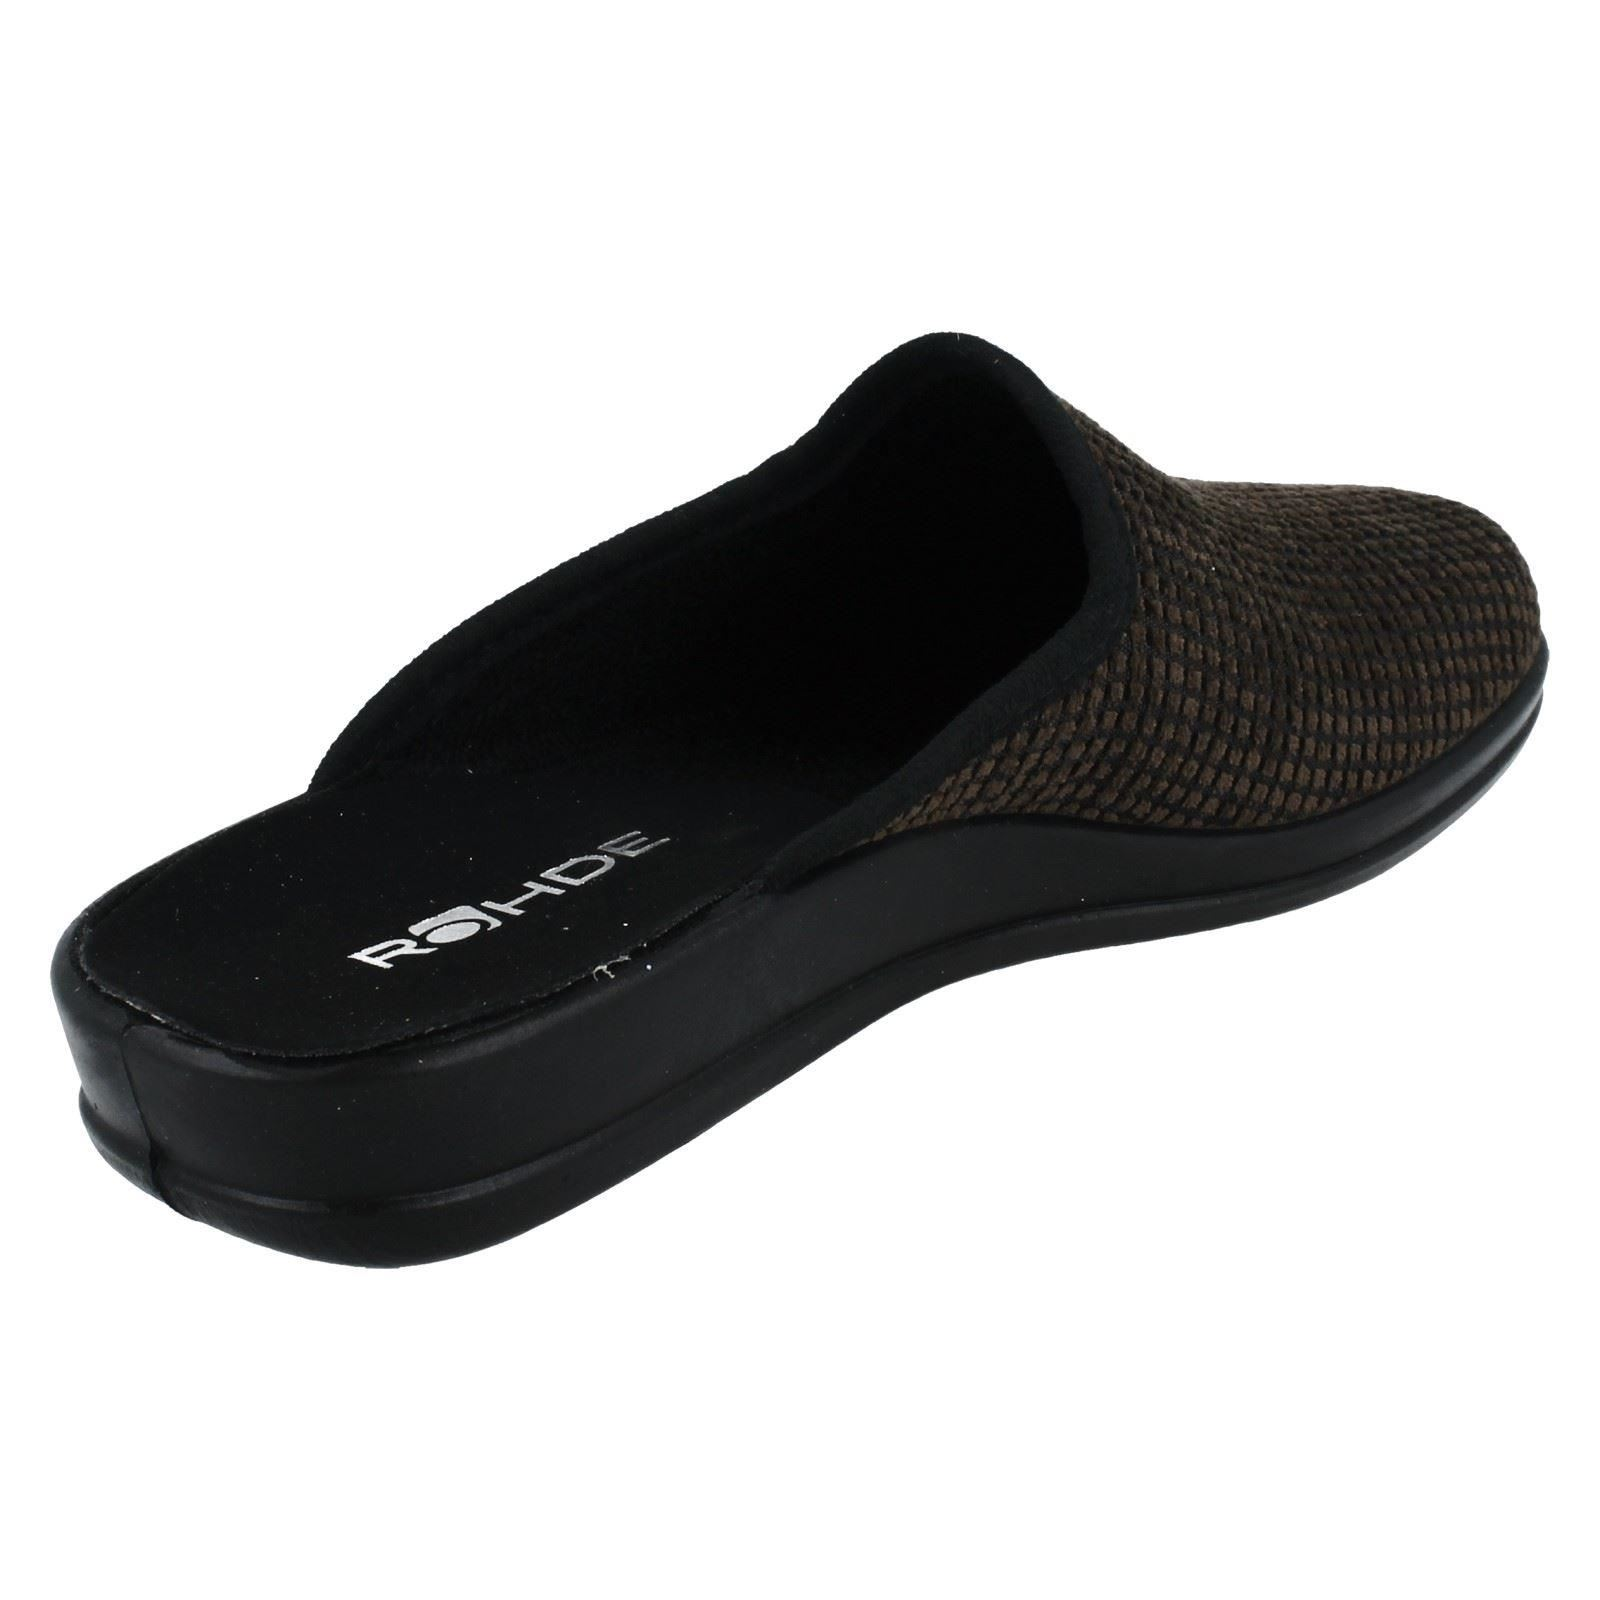 Mens Rohde Textile Mule Slippers *2688*